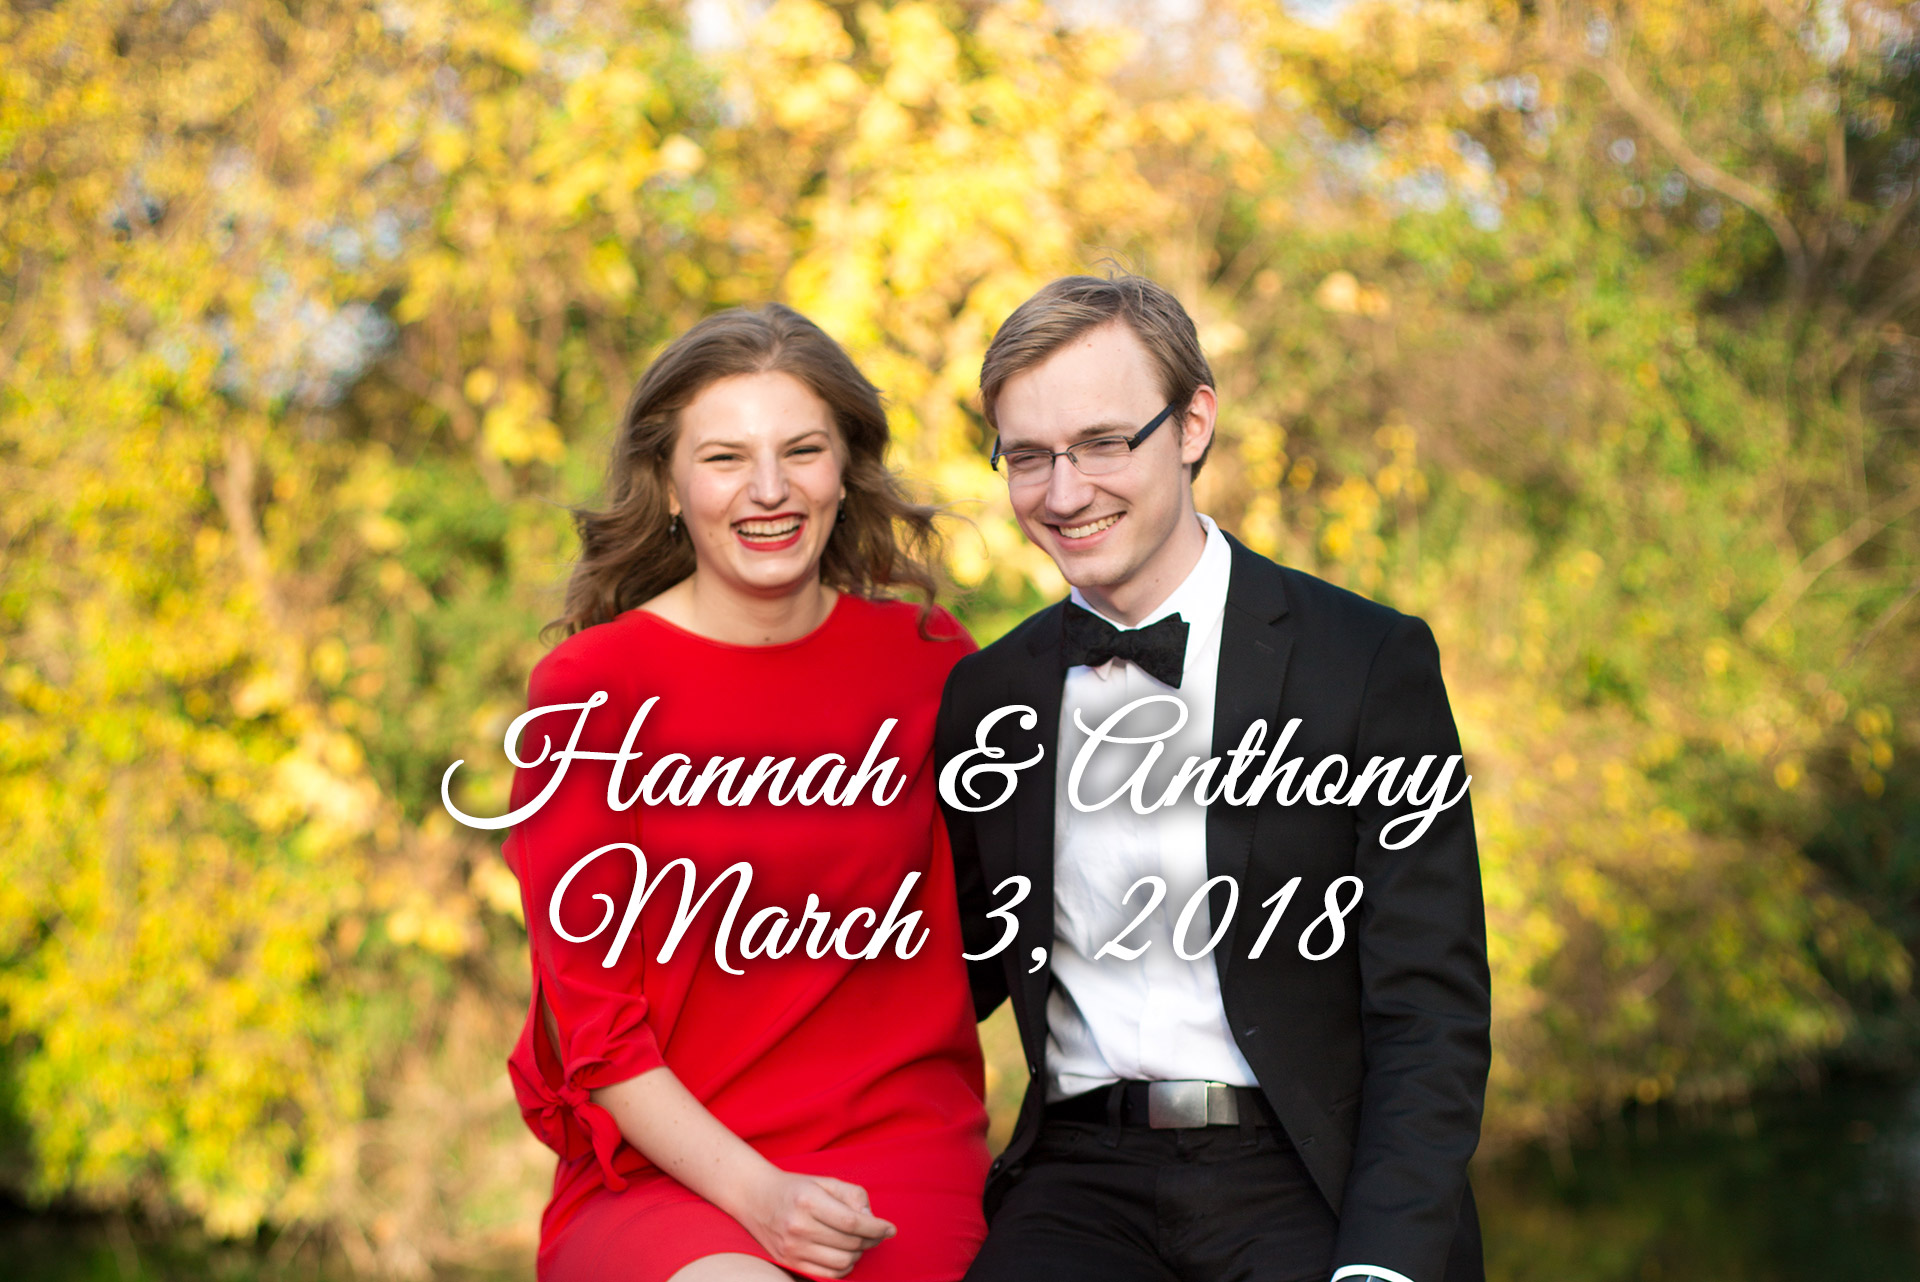 The Remnant Fellowship Engagement of Anthony Wheeler and Hannah Petralito